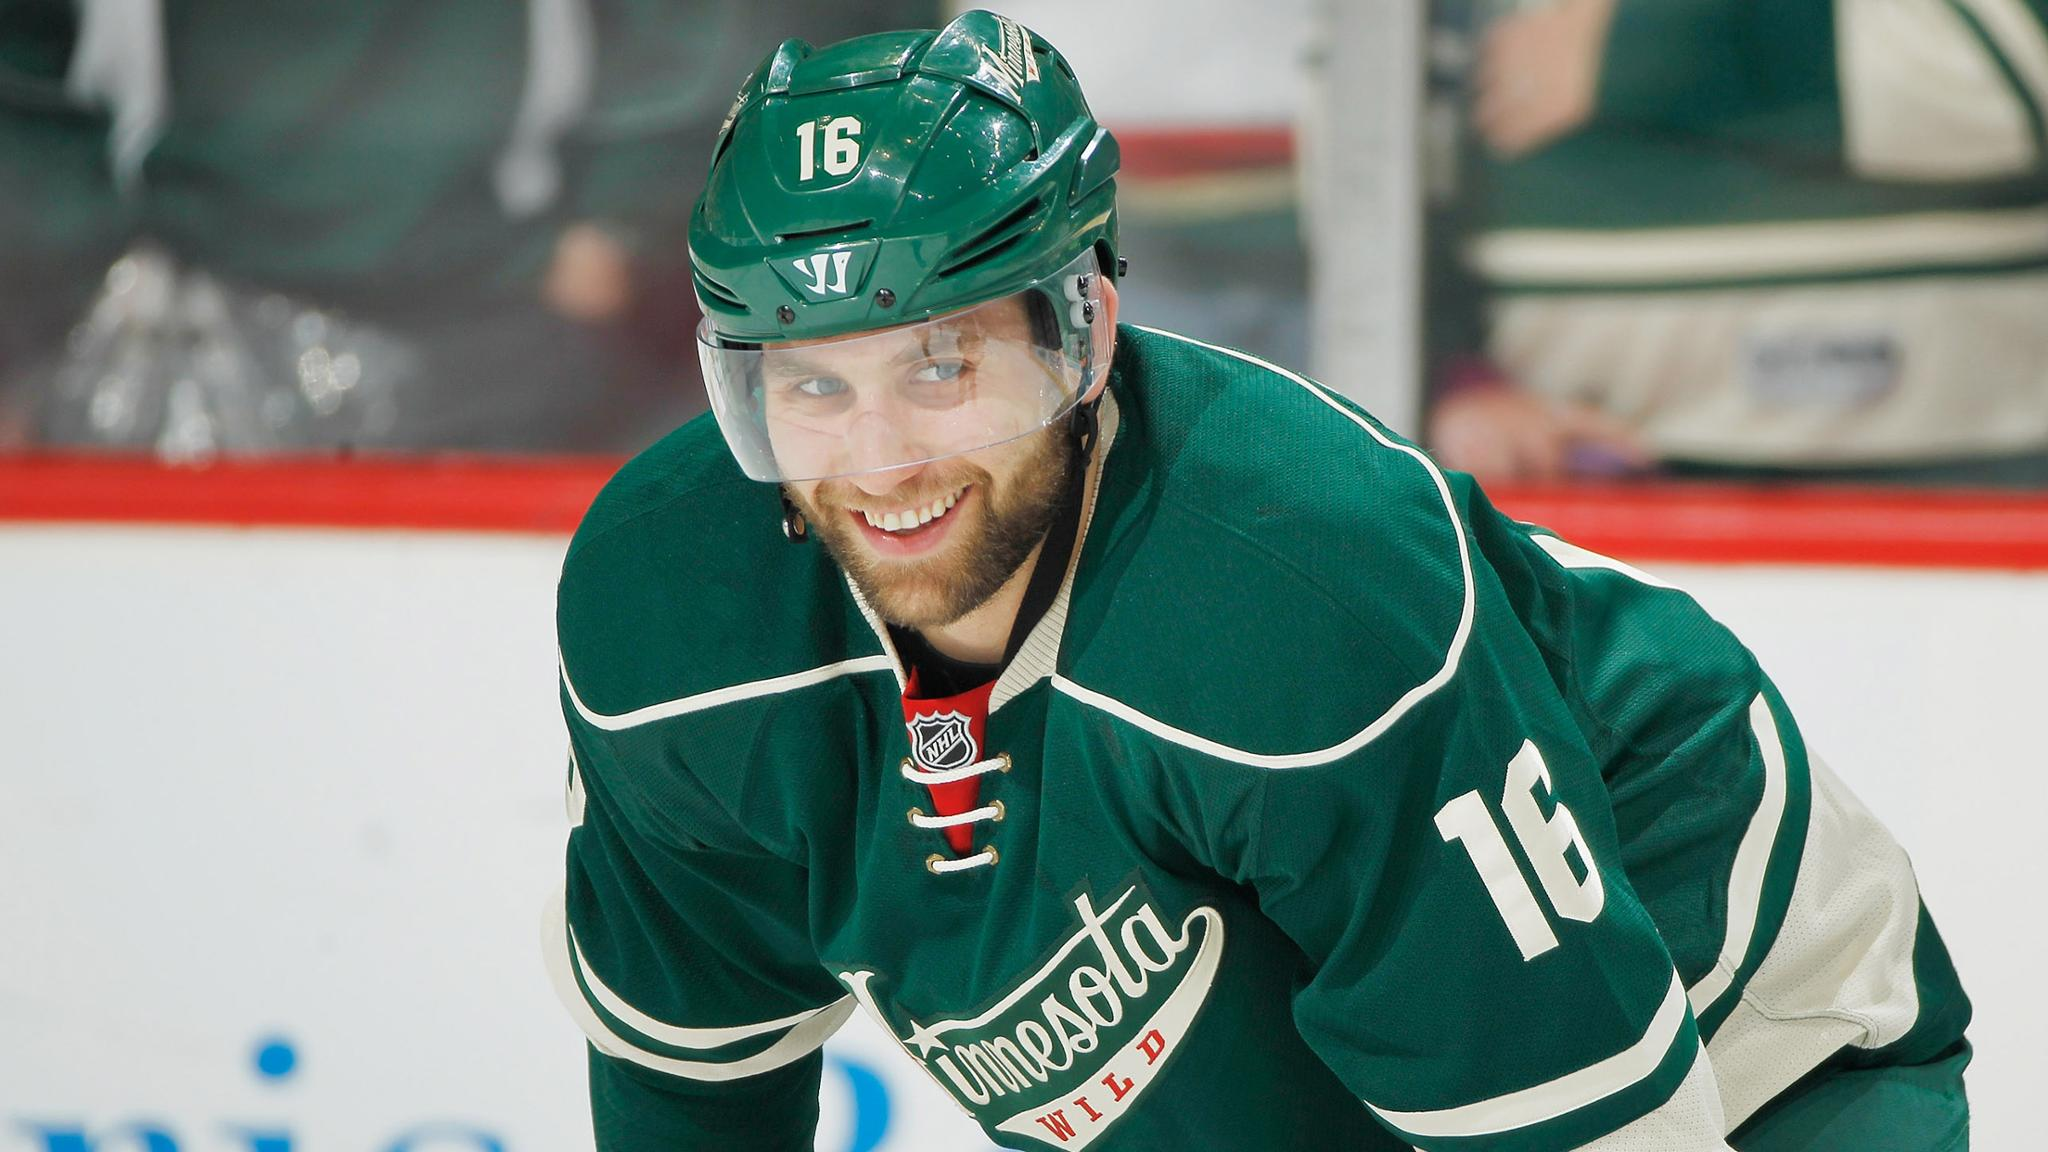 NHL star Jason Zucker's 2017 off-season regime with Red Road Training featured on NHL.com.    -